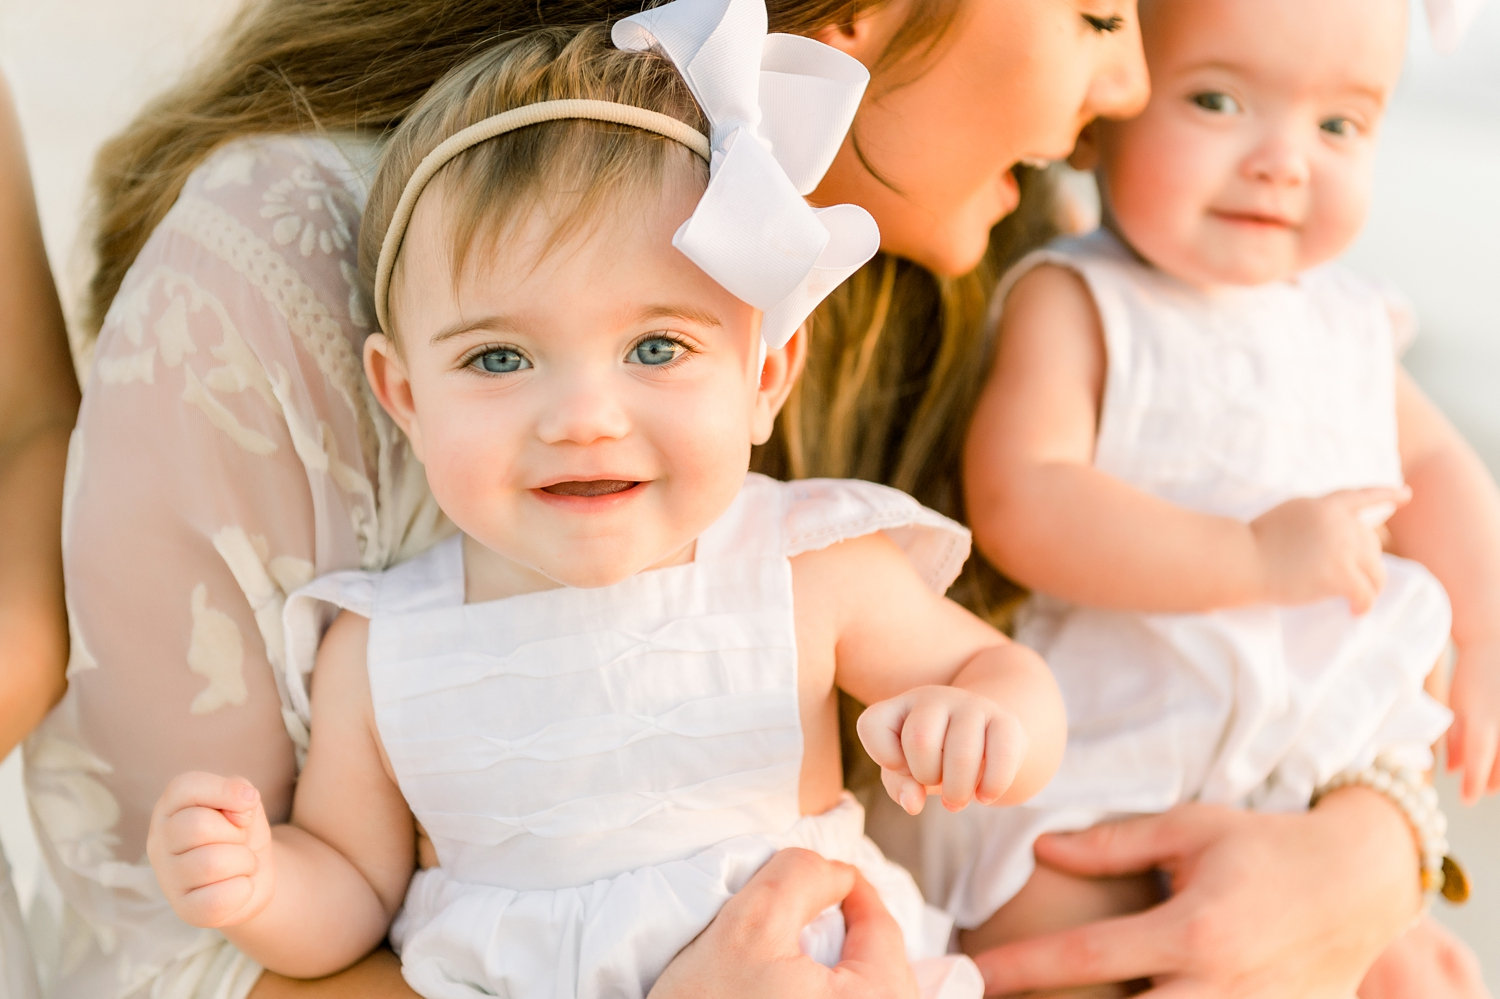 adorable twin girls in the arms of their mom, golden hour sunrise photography